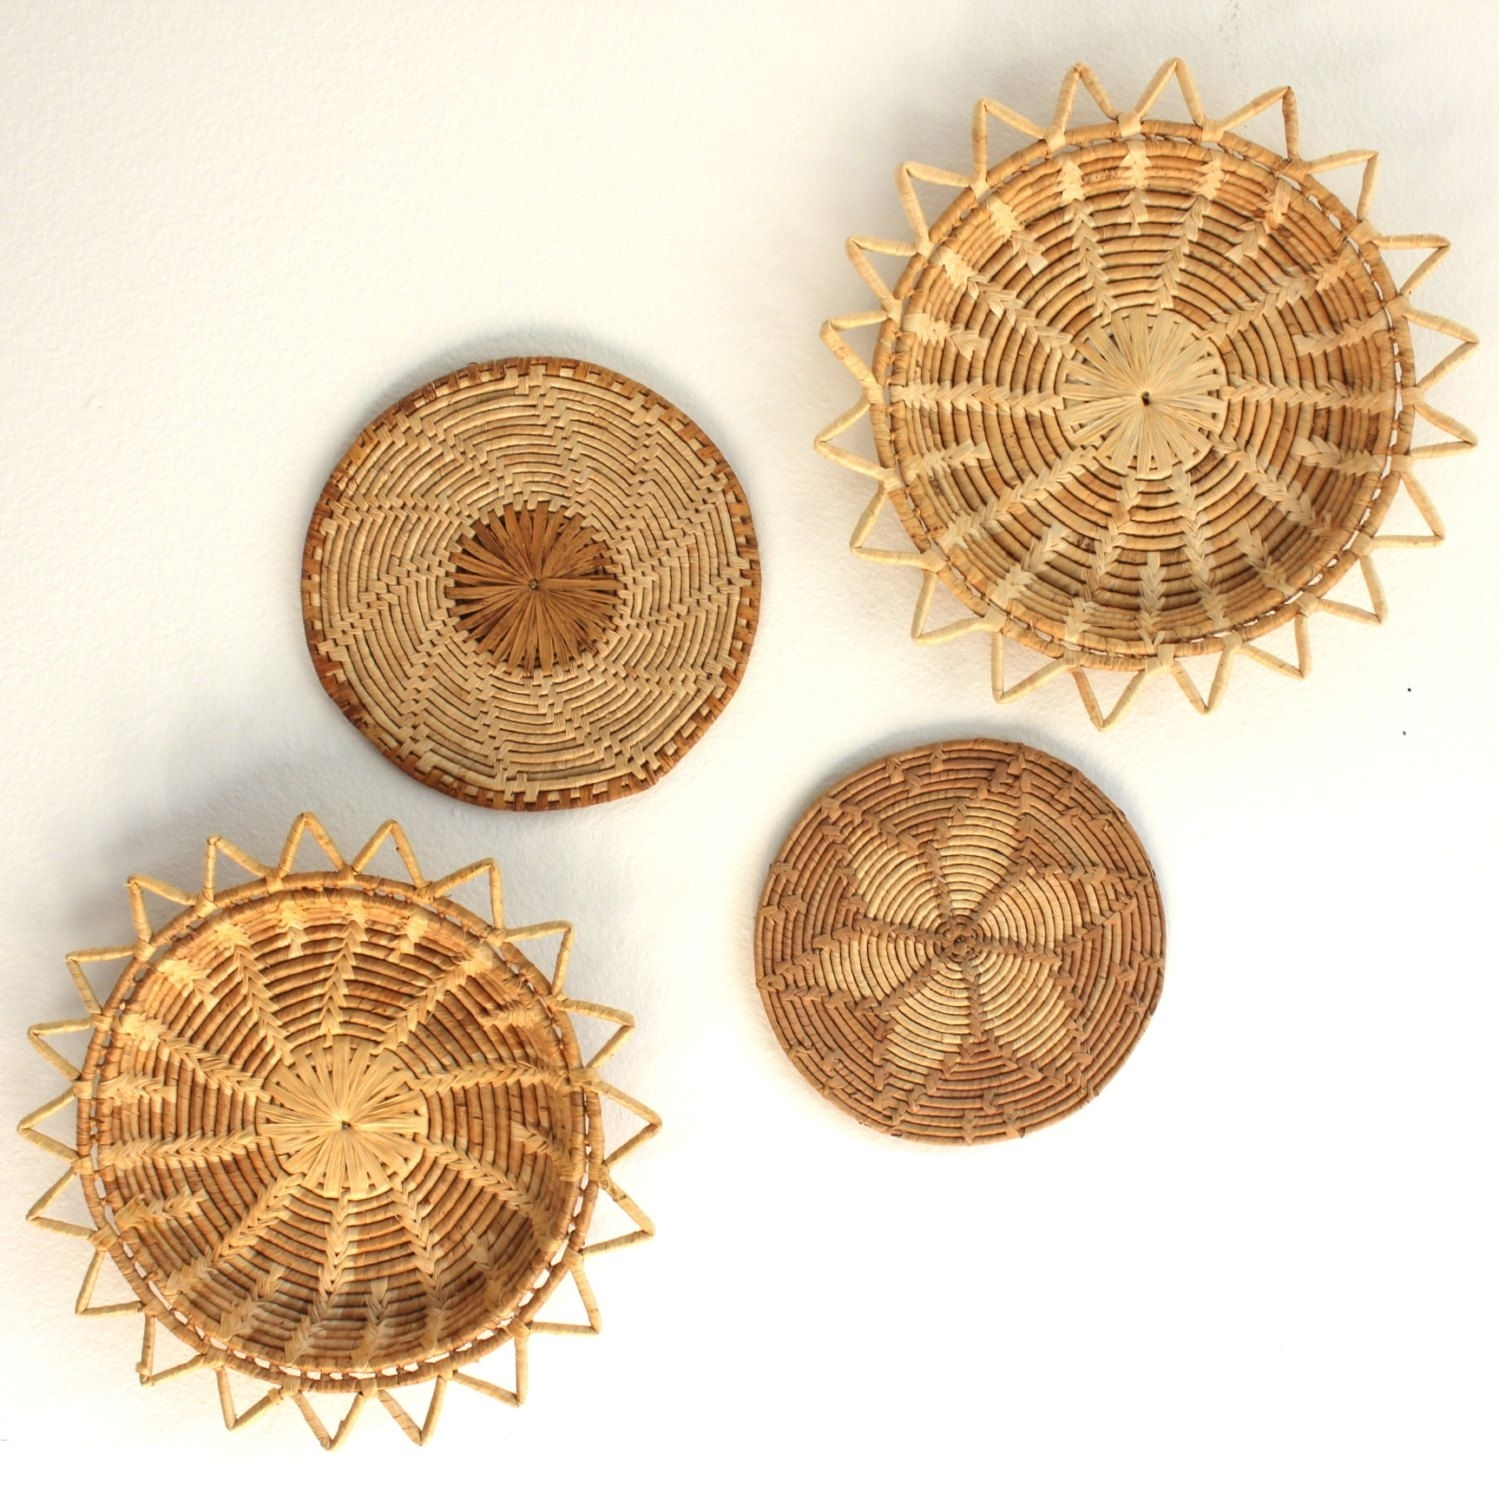 Woven Starburst Wall Basket Art Boho Beach Decor | Pinterest Intended For Most Up To Date Woven Basket Wall Art (Gallery 20 of 20)